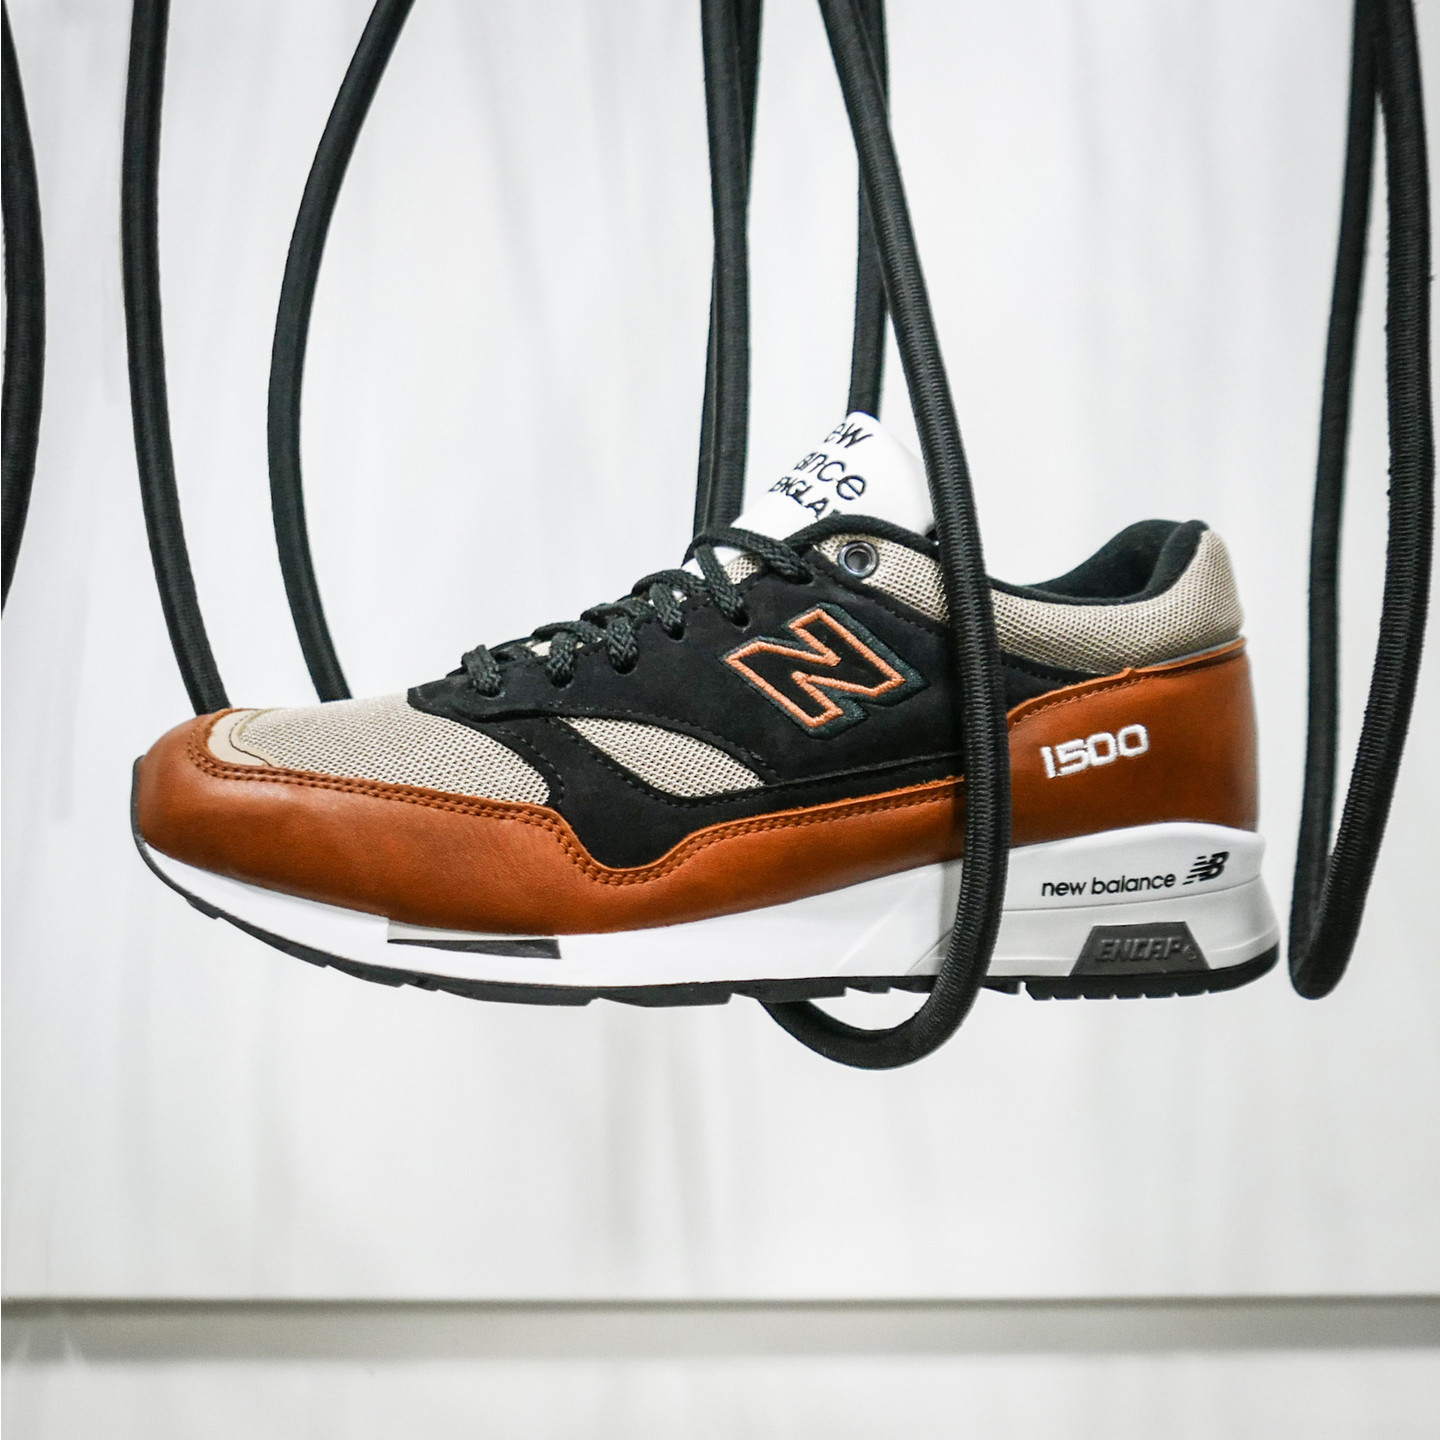 New Balance M1500 TBT - Made in England Tan / Brown / Black M1500TBT